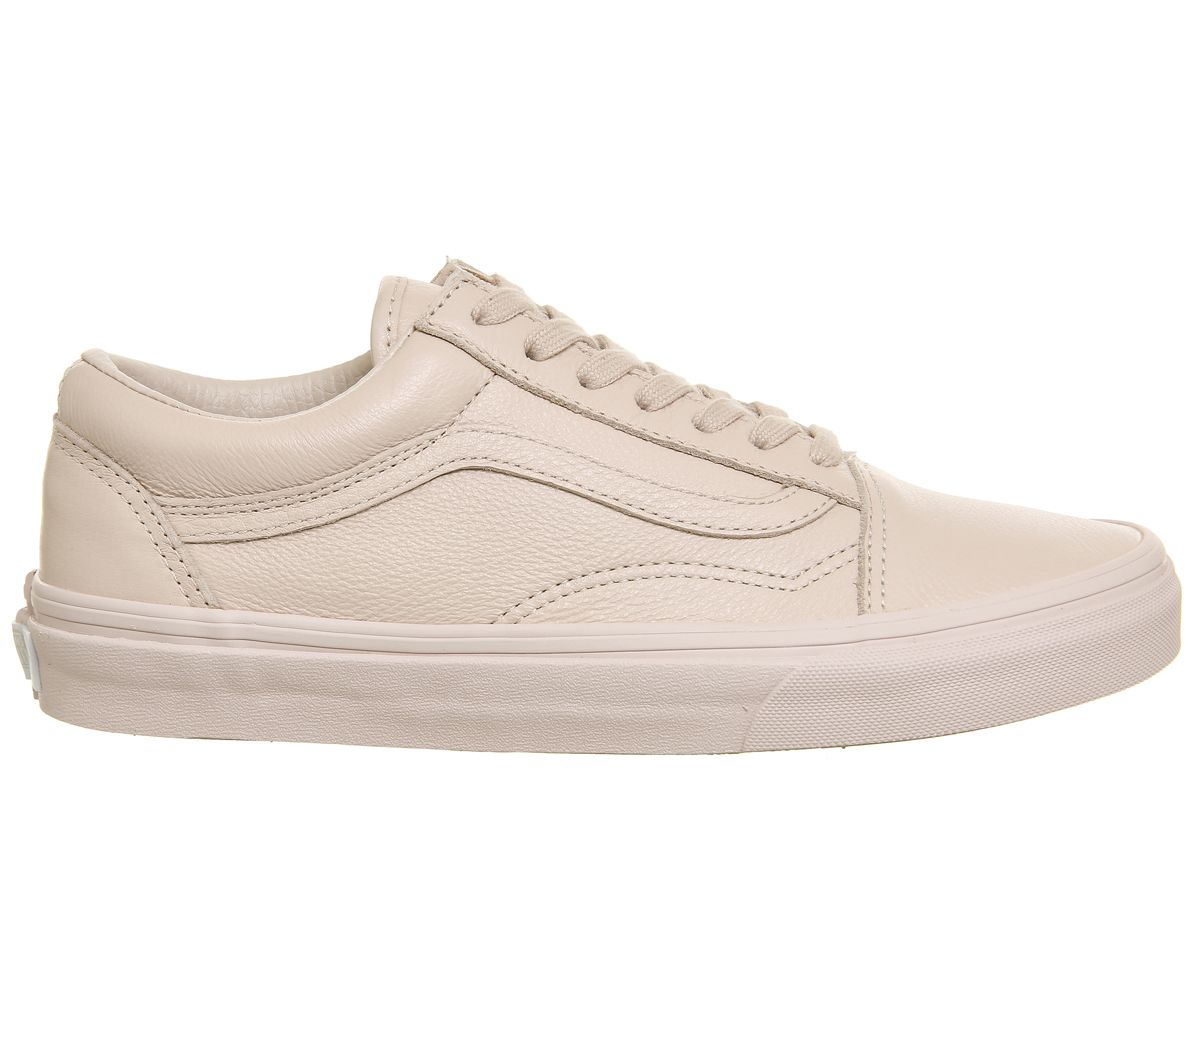 b9c6007895 Vans Old Skool Trainers Sepia Rose Mono - Hers trainers